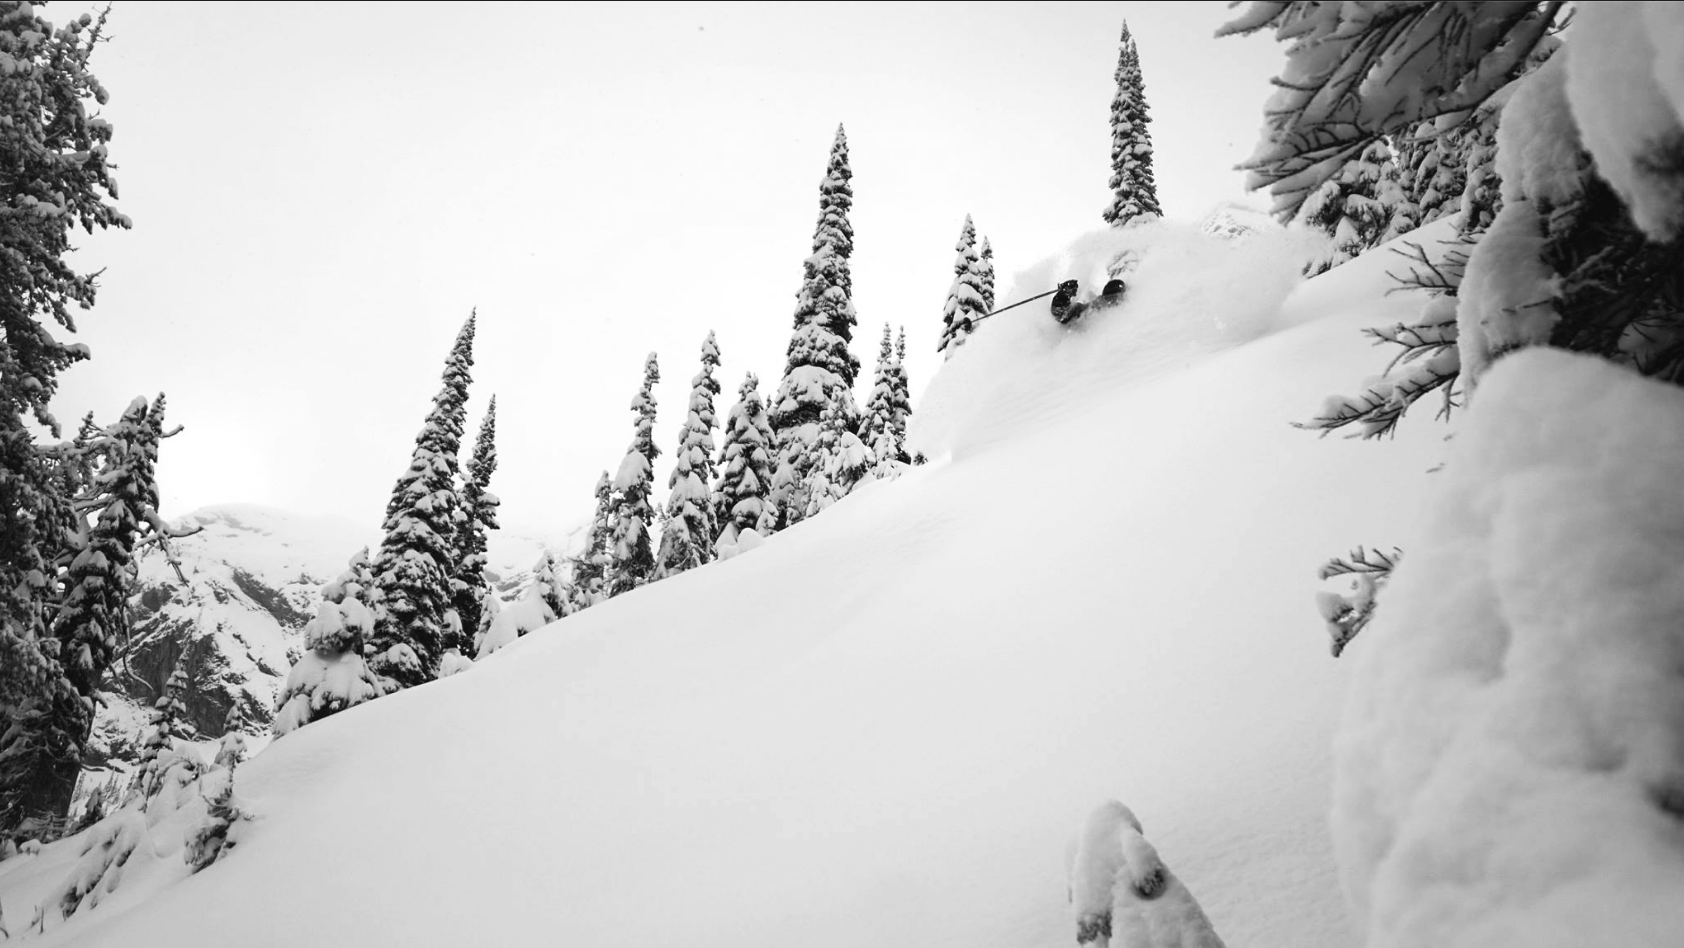 Fernie Powder Nov 17